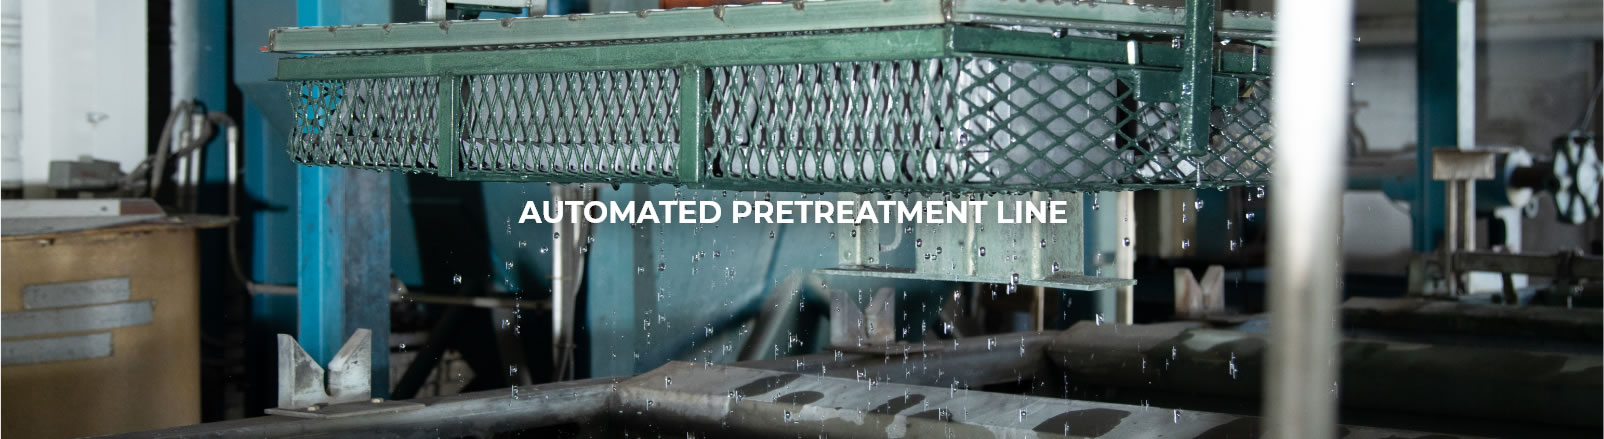 Automated pretreatment line